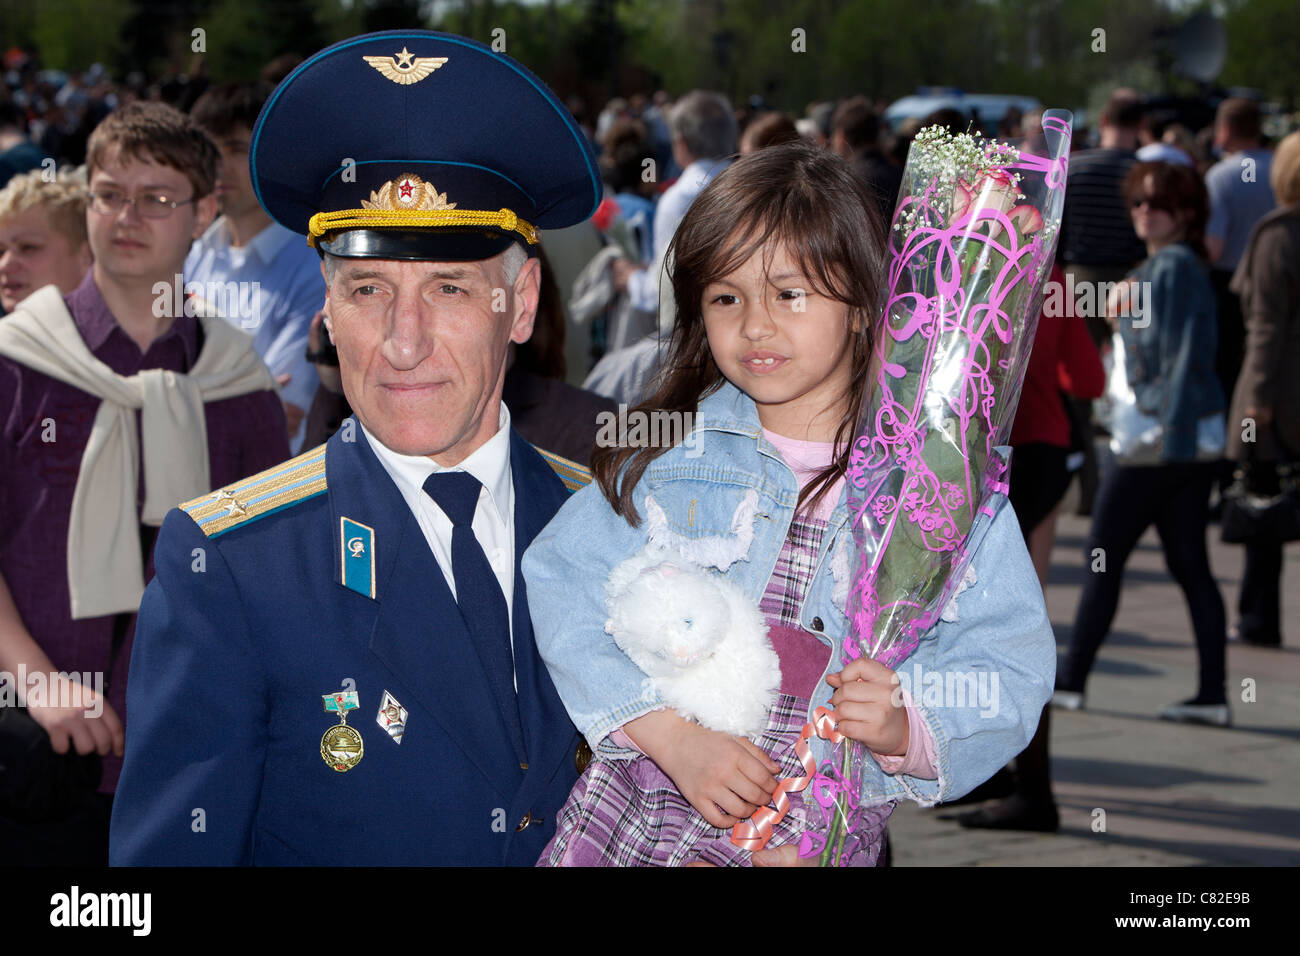 Russian Lieutenant Colonel celebrating the Red Army's World War II Victory on May 9 at Victory Park in Moscow, - Stock Image